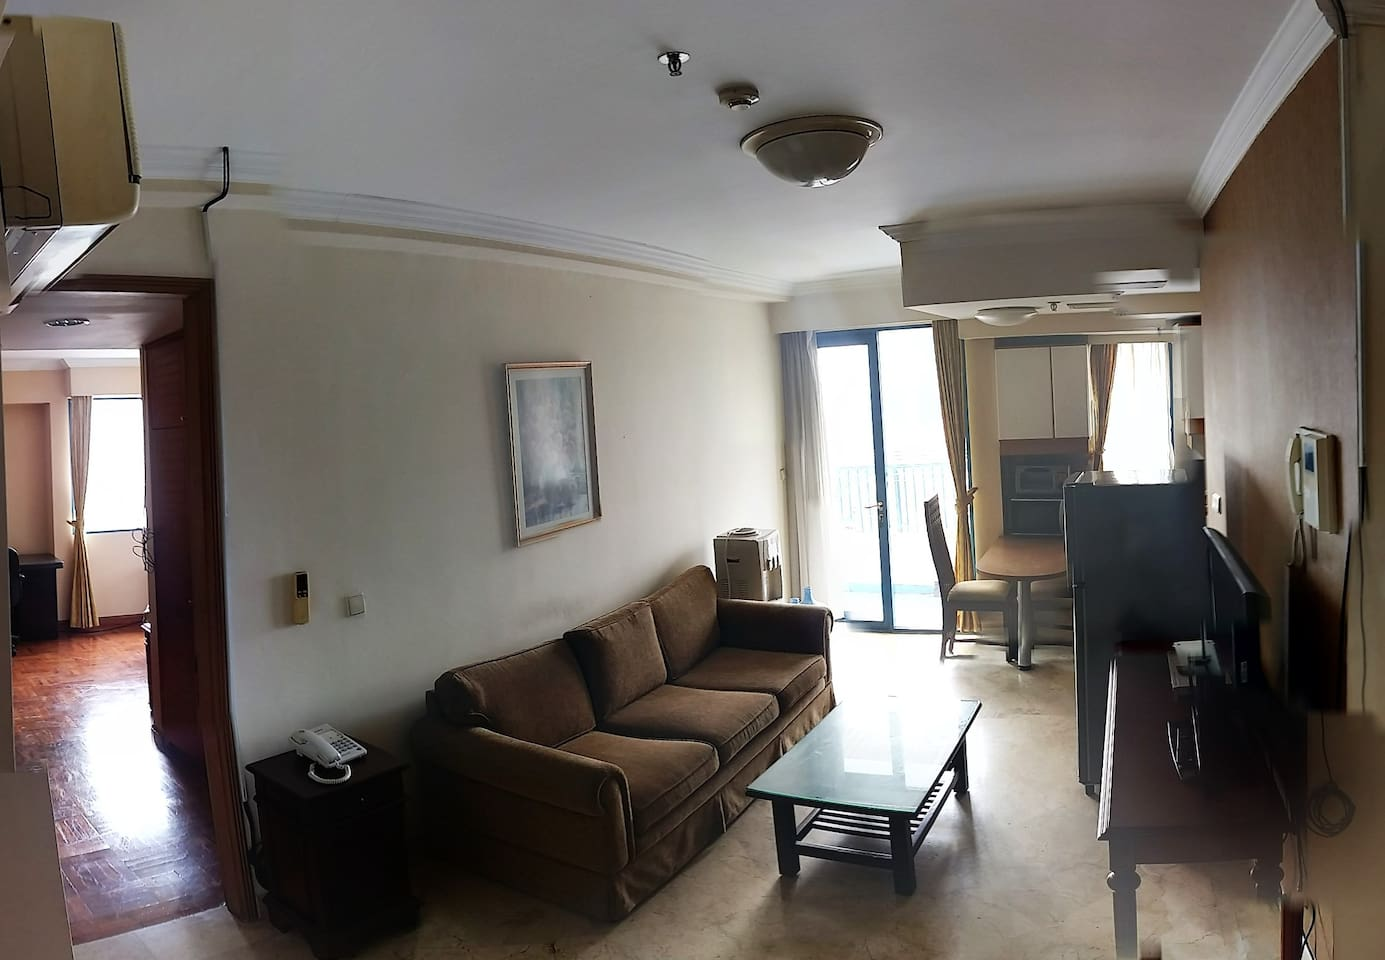 A lovely Apartment for Couples or single people that are visiting Jakarta. Near the Heart of Jakarta